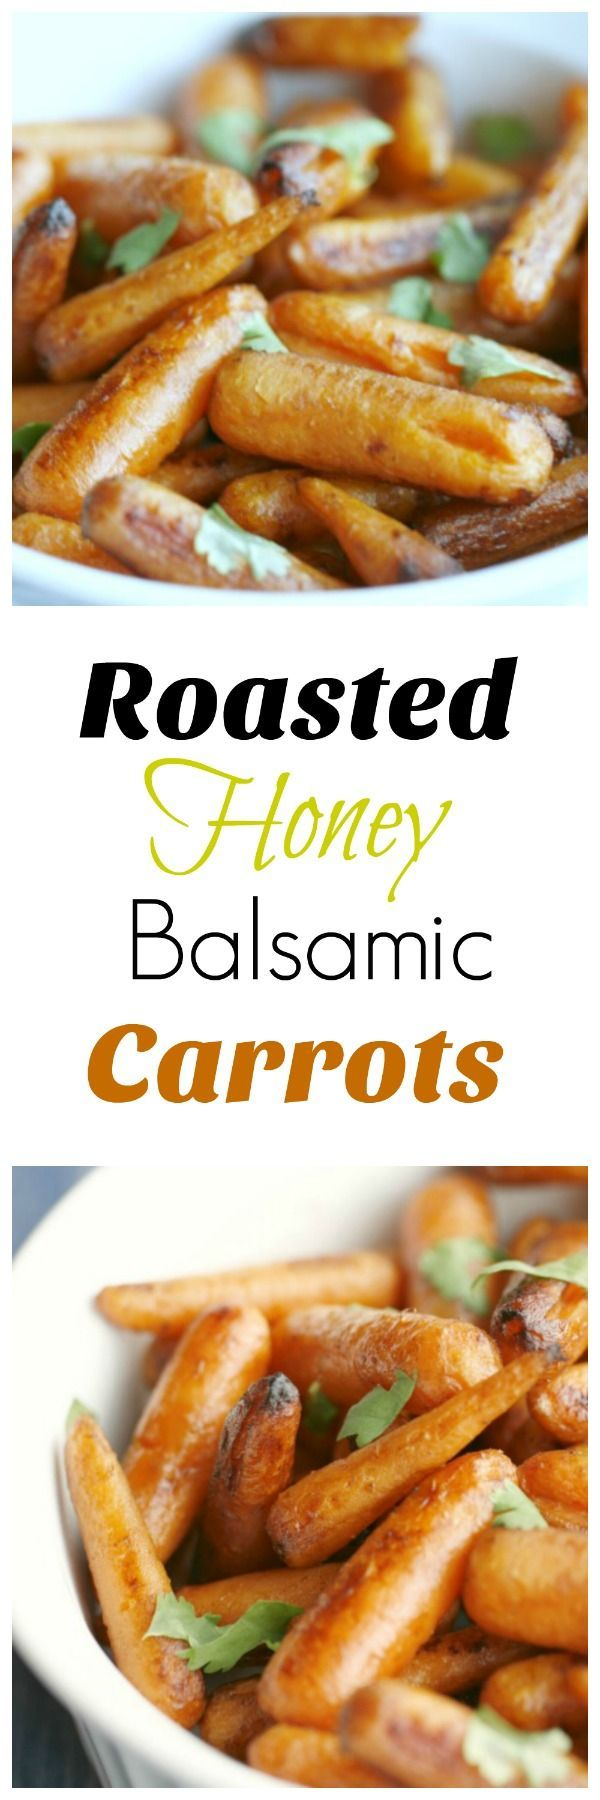 Roasted Honey Balsamic Carrots. A super simple and delicious side dish the whole family will love. 21 Day Fix Approved!